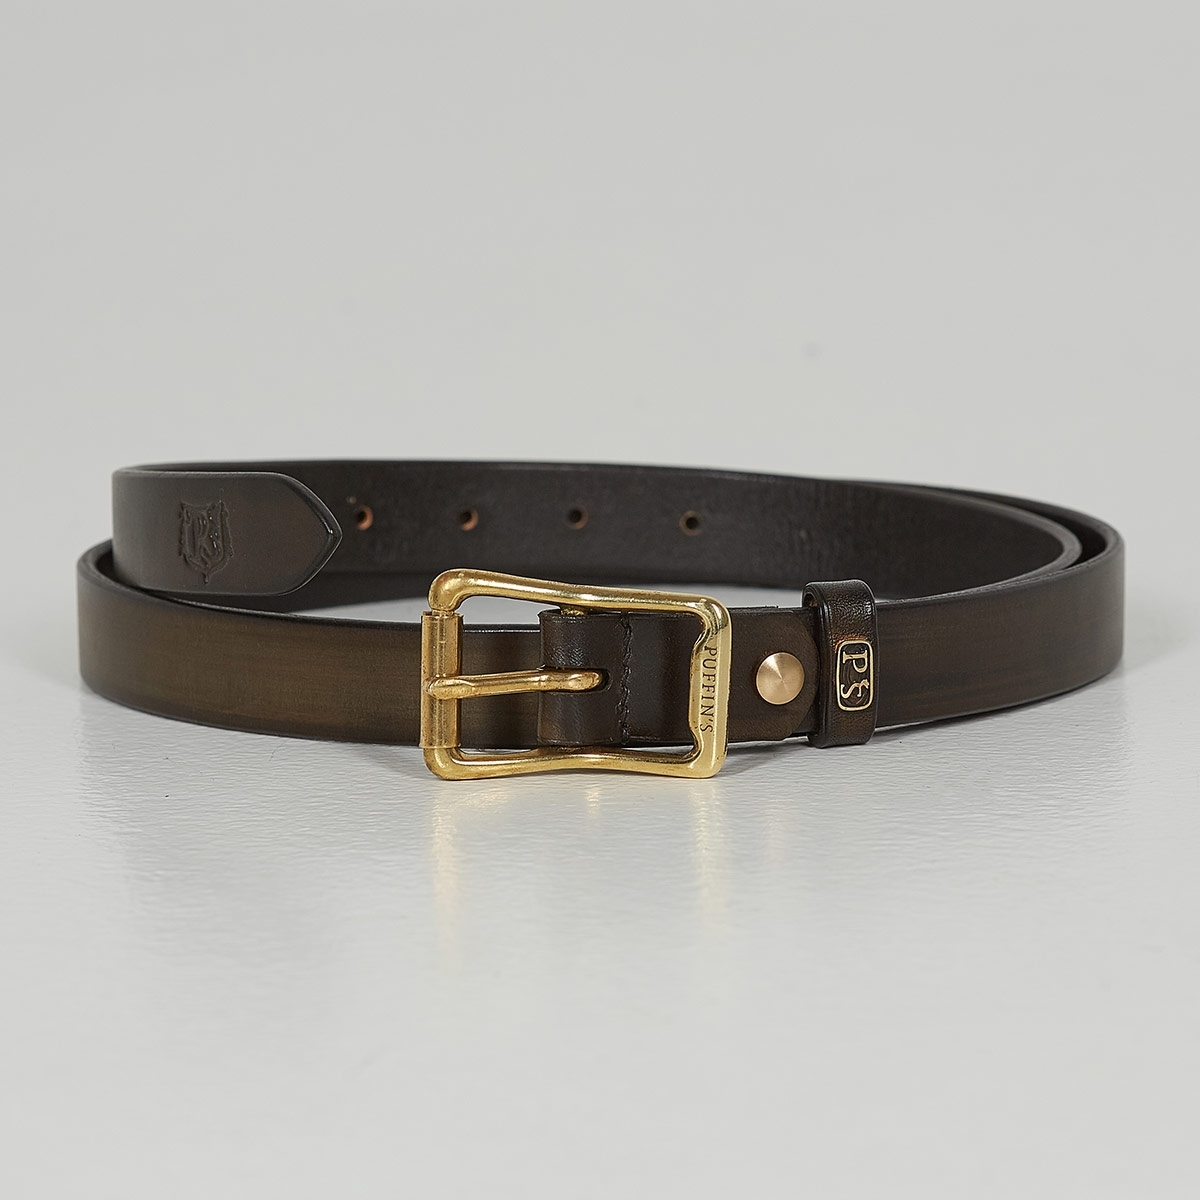 Luxury narrow belt 25mm with patina dark olive